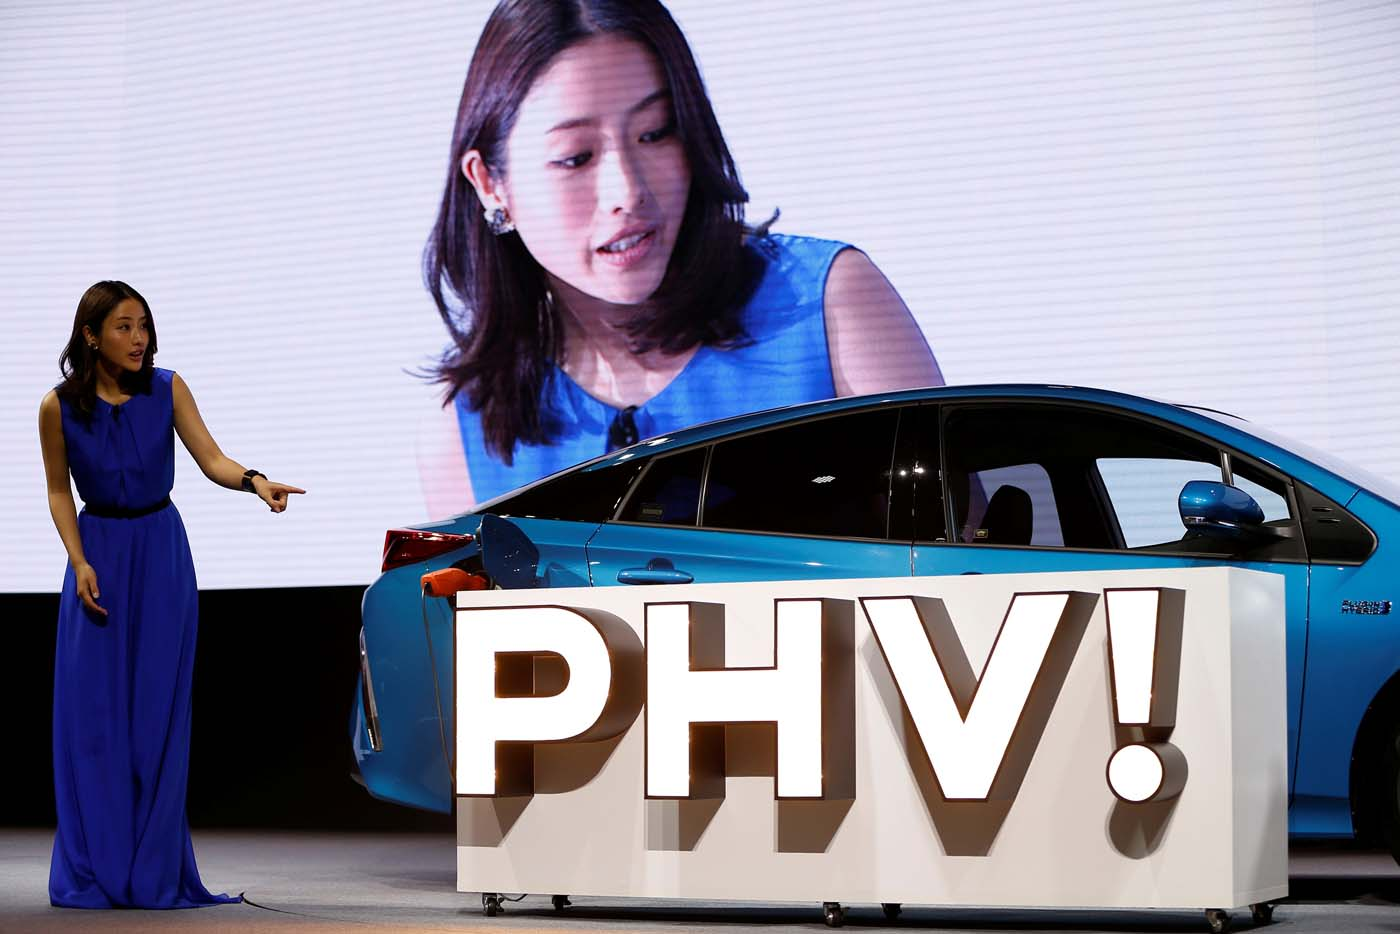 Japanese actress Satomi Ishihara demonstrates electric power supply system from Toyota Motor Corp.' Prius PHV Plug-in-Hybrid vehicle, also known as Prius Prime in the U.S., during an event to mark the launch of the car in Japan, in Tokyo, Japan February 15, 2017. REUTERS/Issei Kato